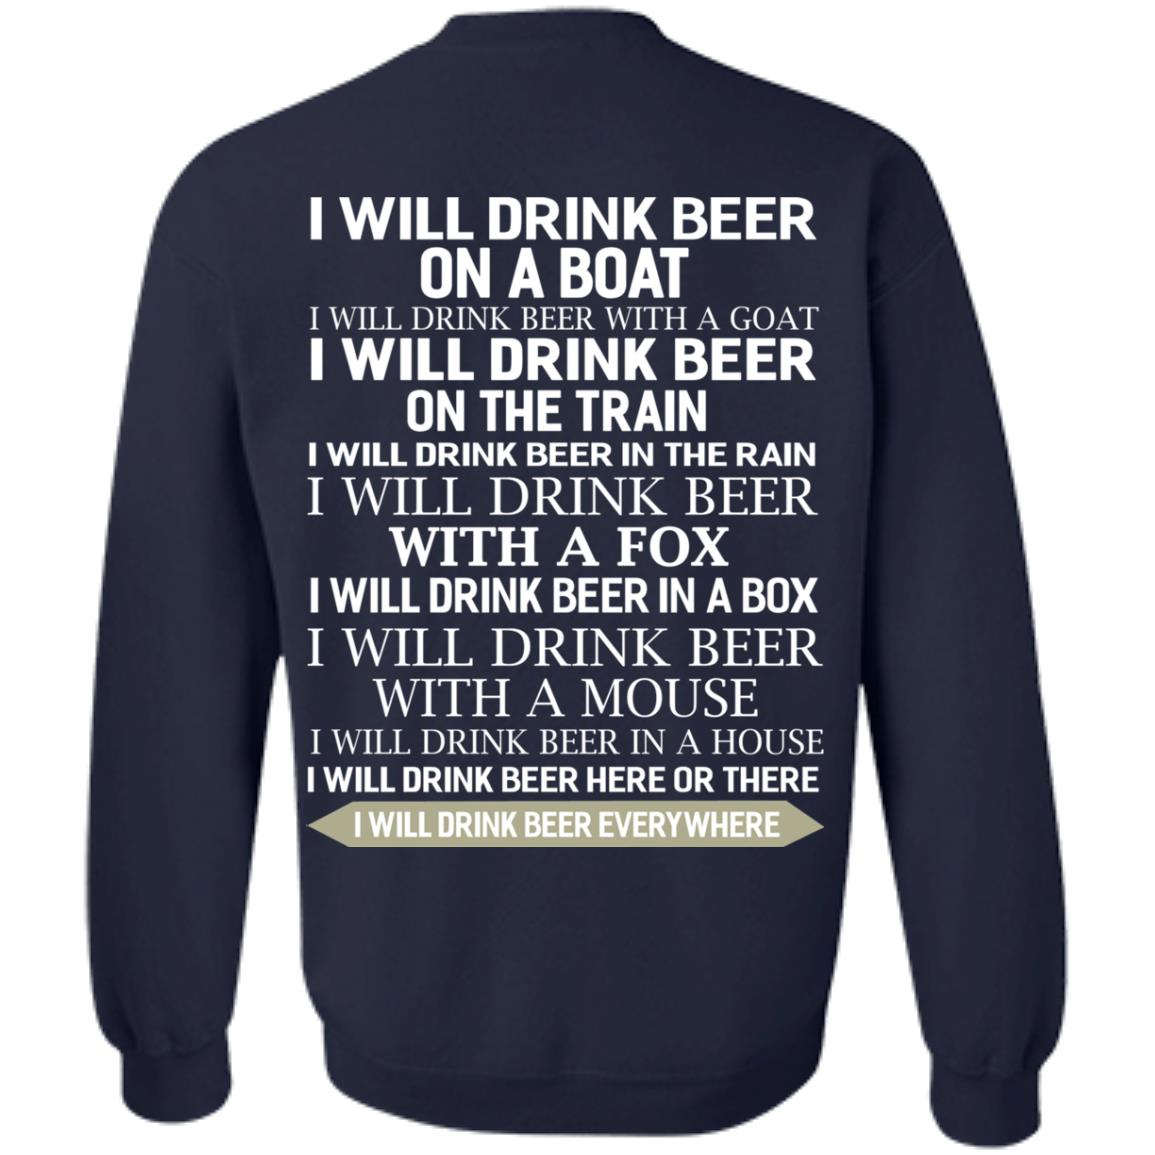 image 321 - I Will Drink Beer On a Boat I Will Drink Beer With a Goat Shirt